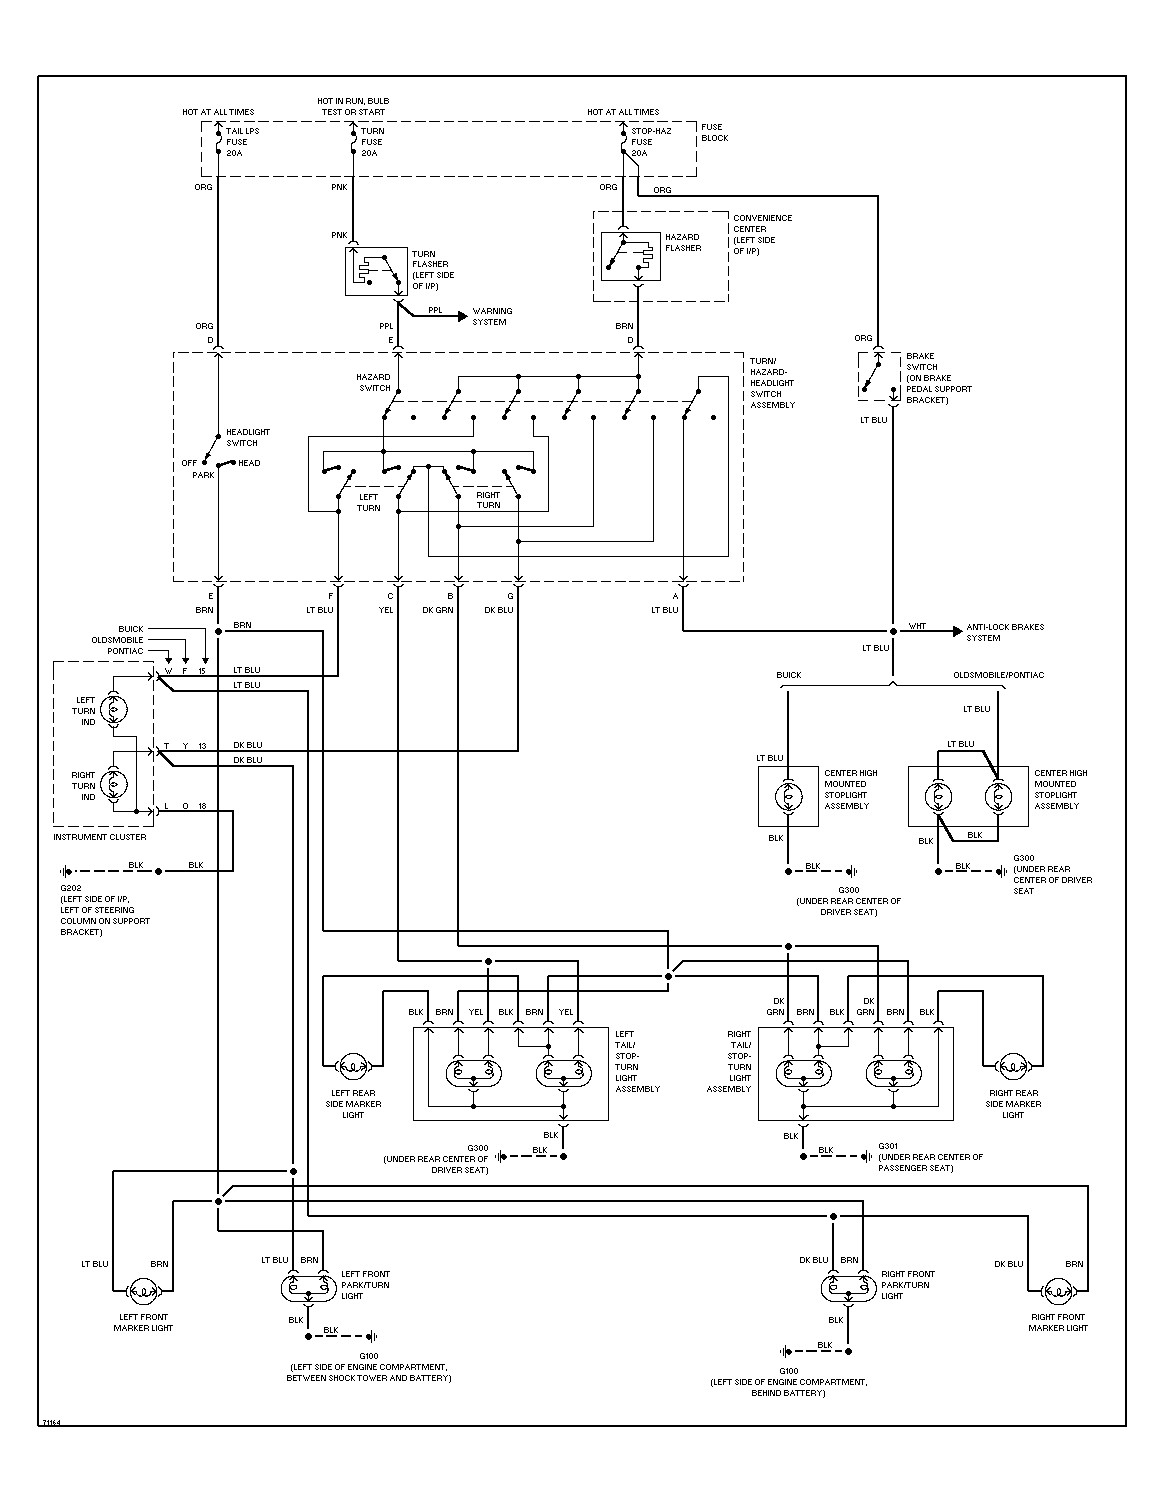 2003 Pontiac Grand Am V6 Engine Diagram : 2003 Grand Am